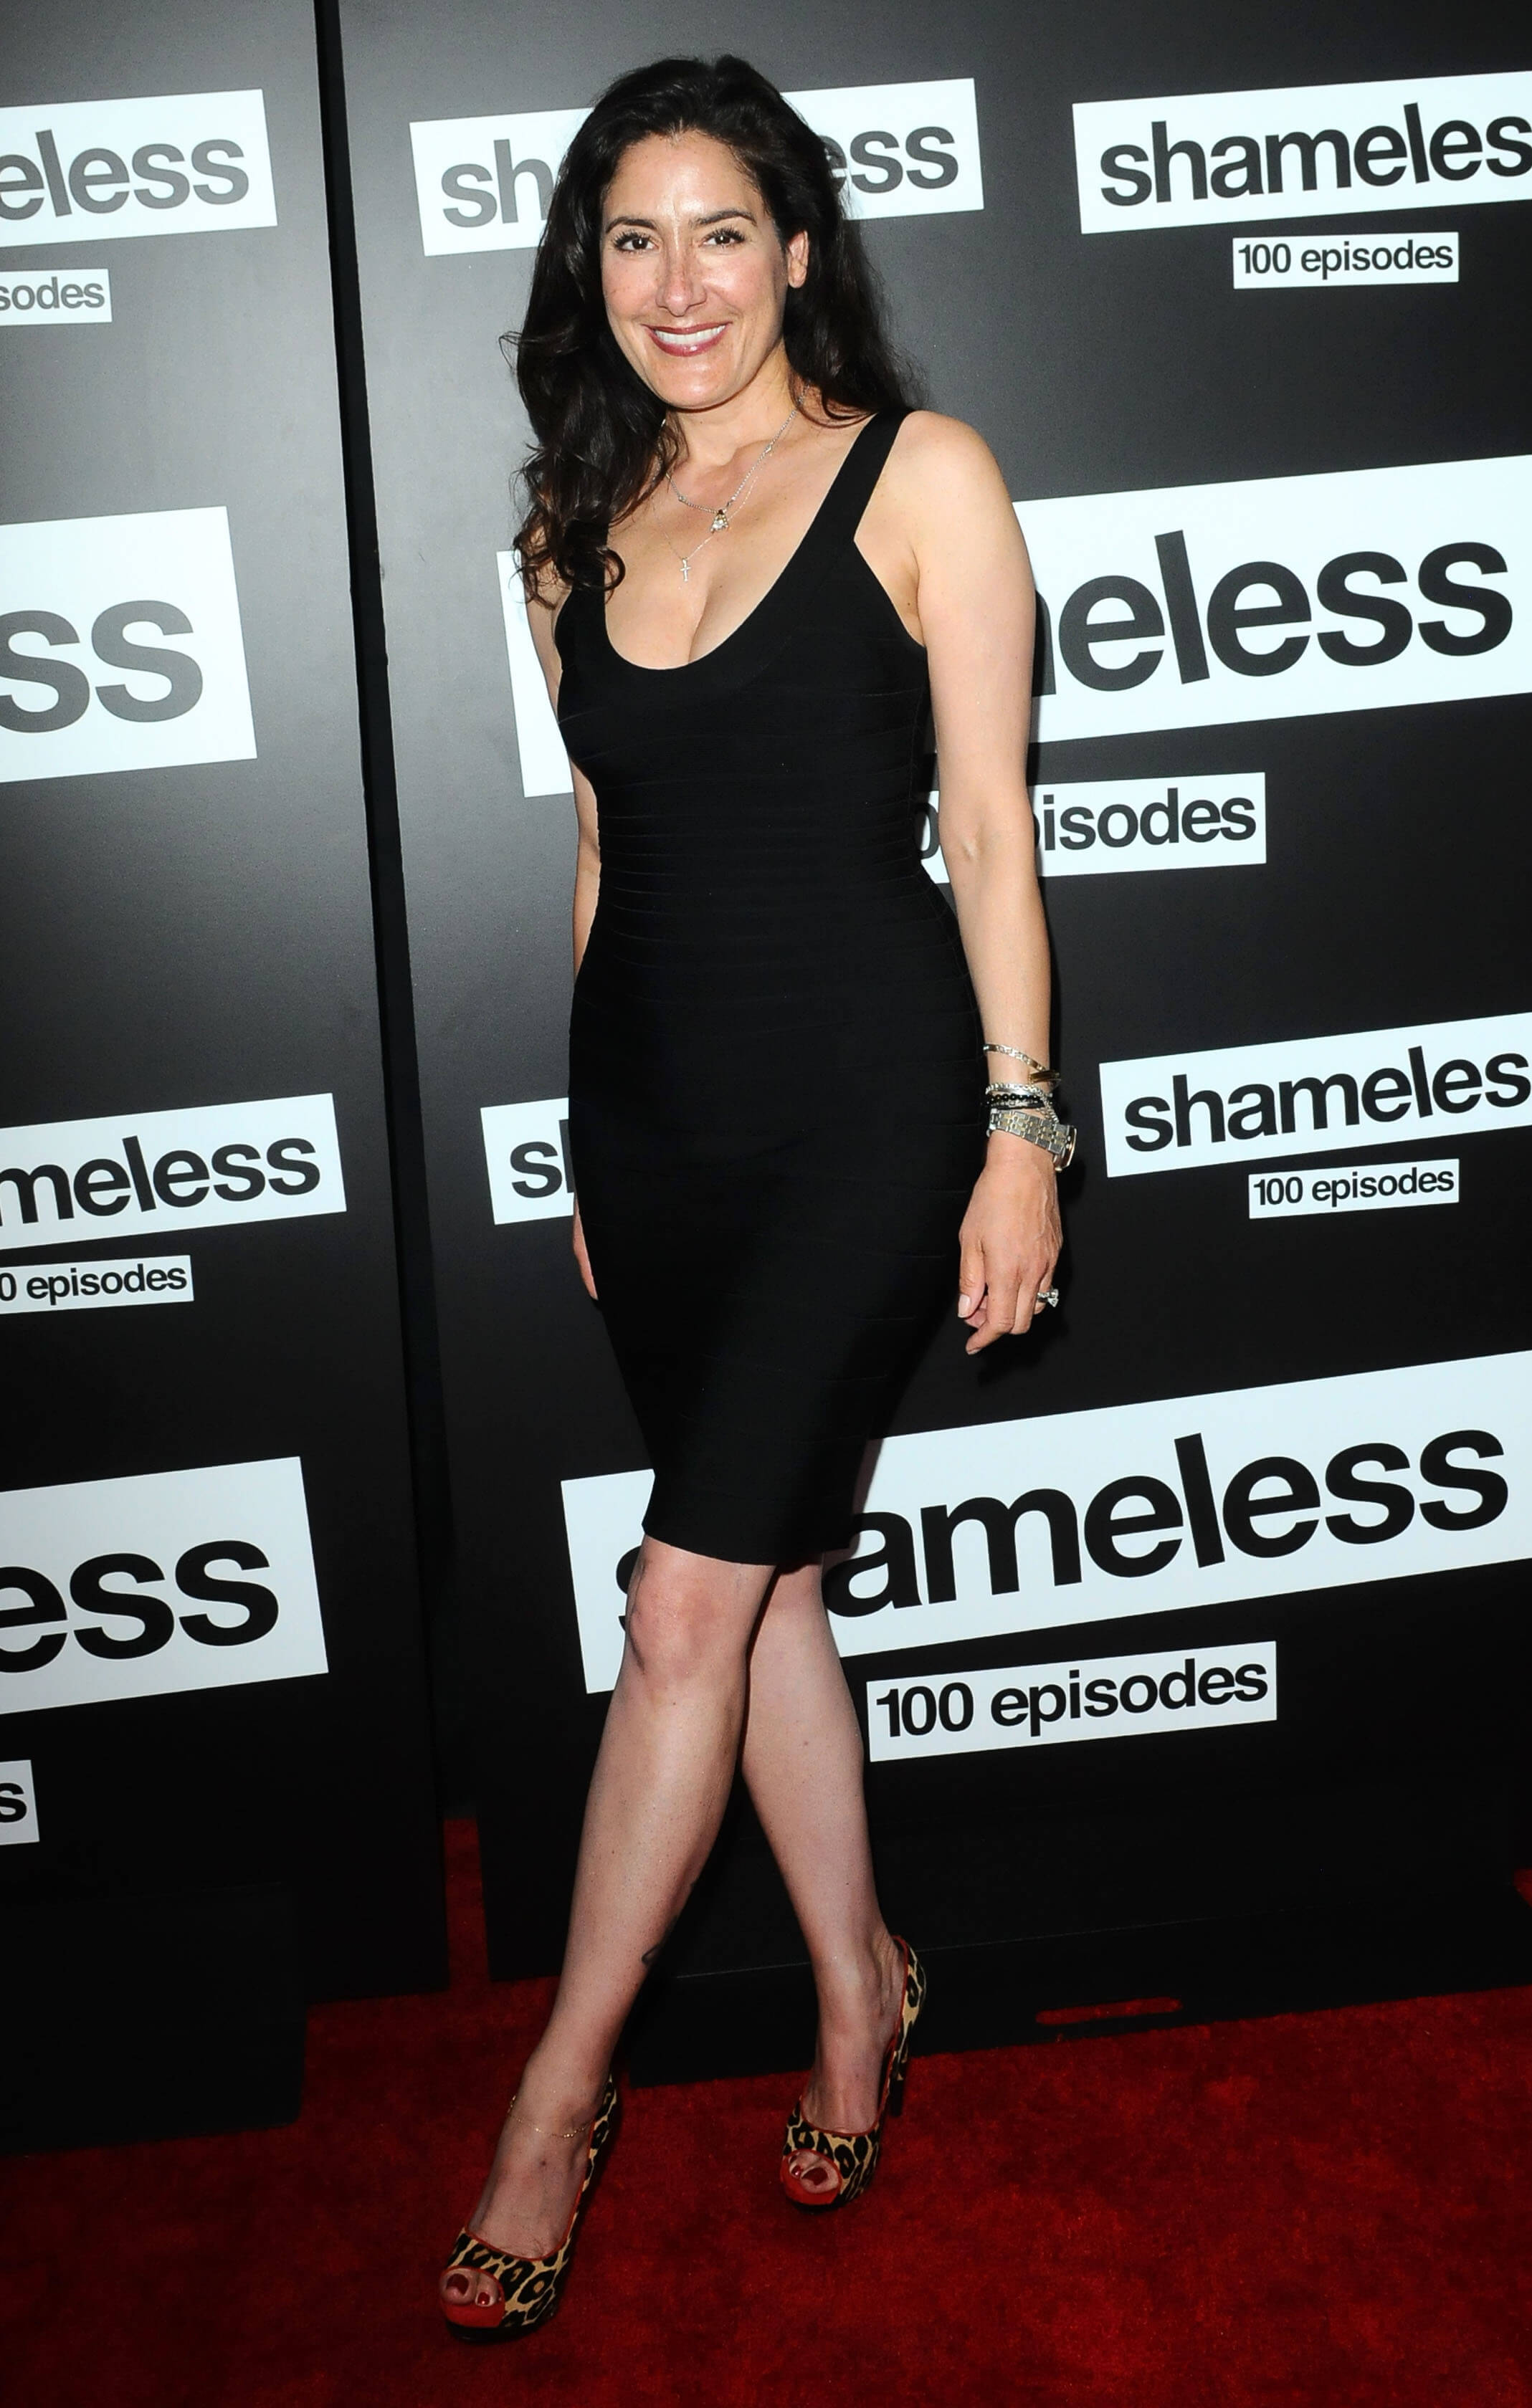 37 Alicia Coppola Hot photos too much for you to handle